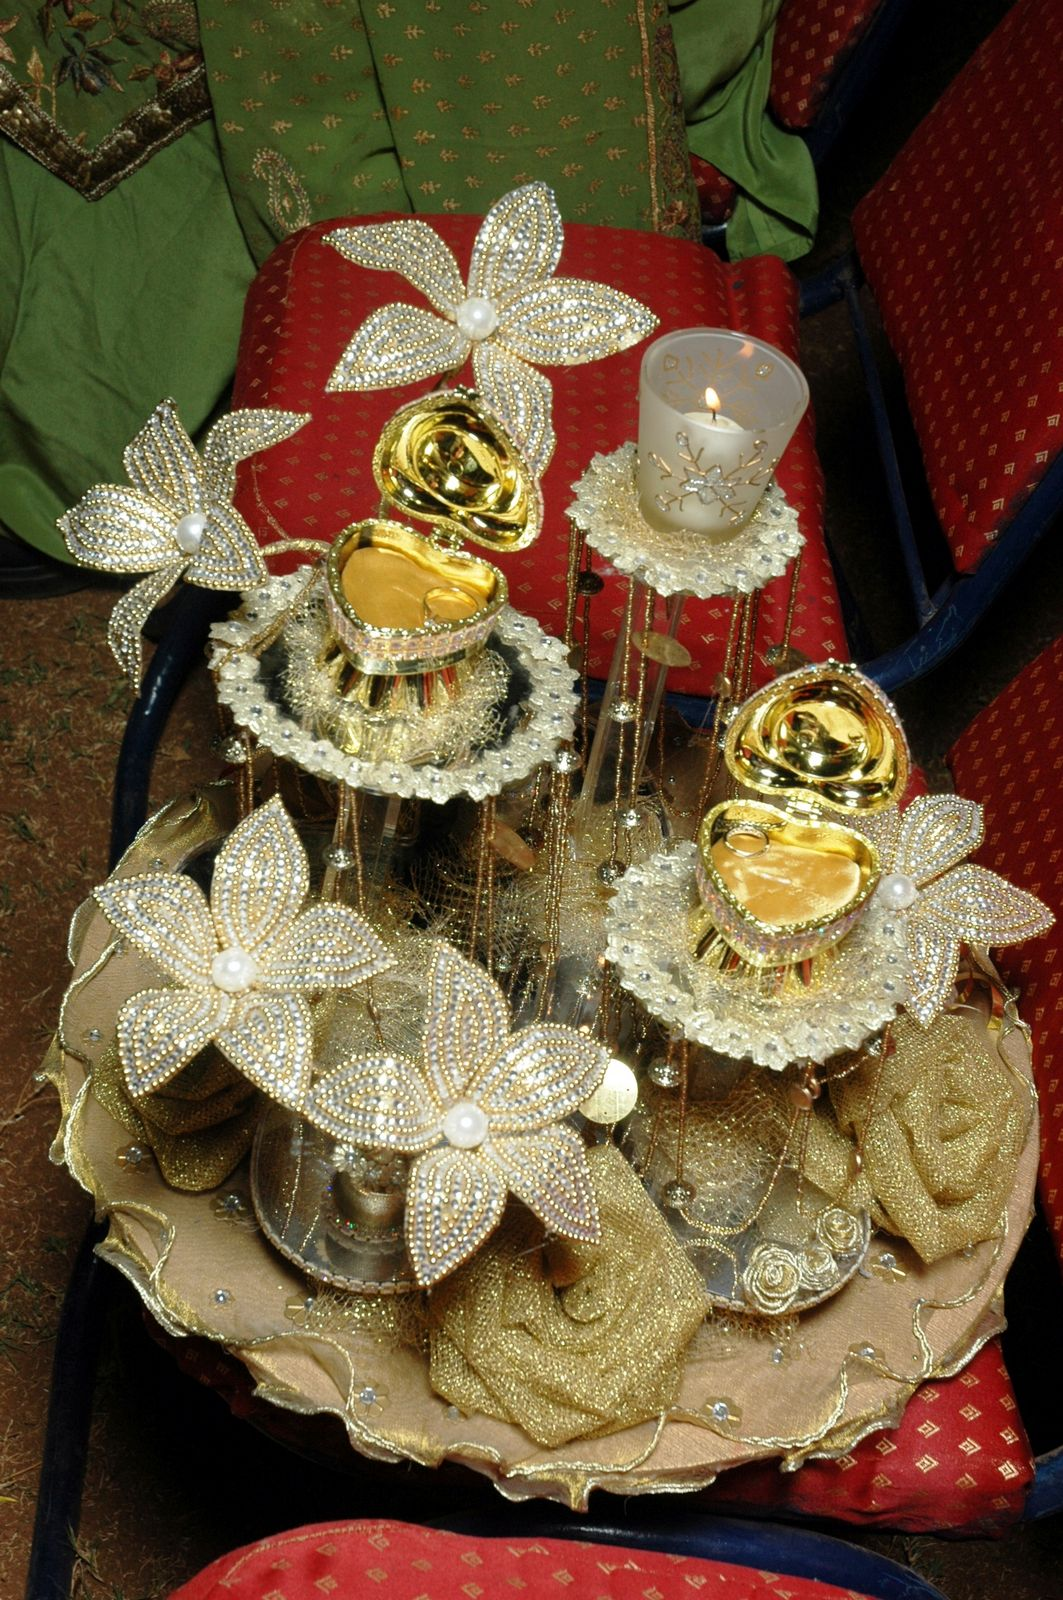 Indian Wedding Gift Decoration : RANJANA ARTS WWW.RANJANAARTS.COM: November 2012